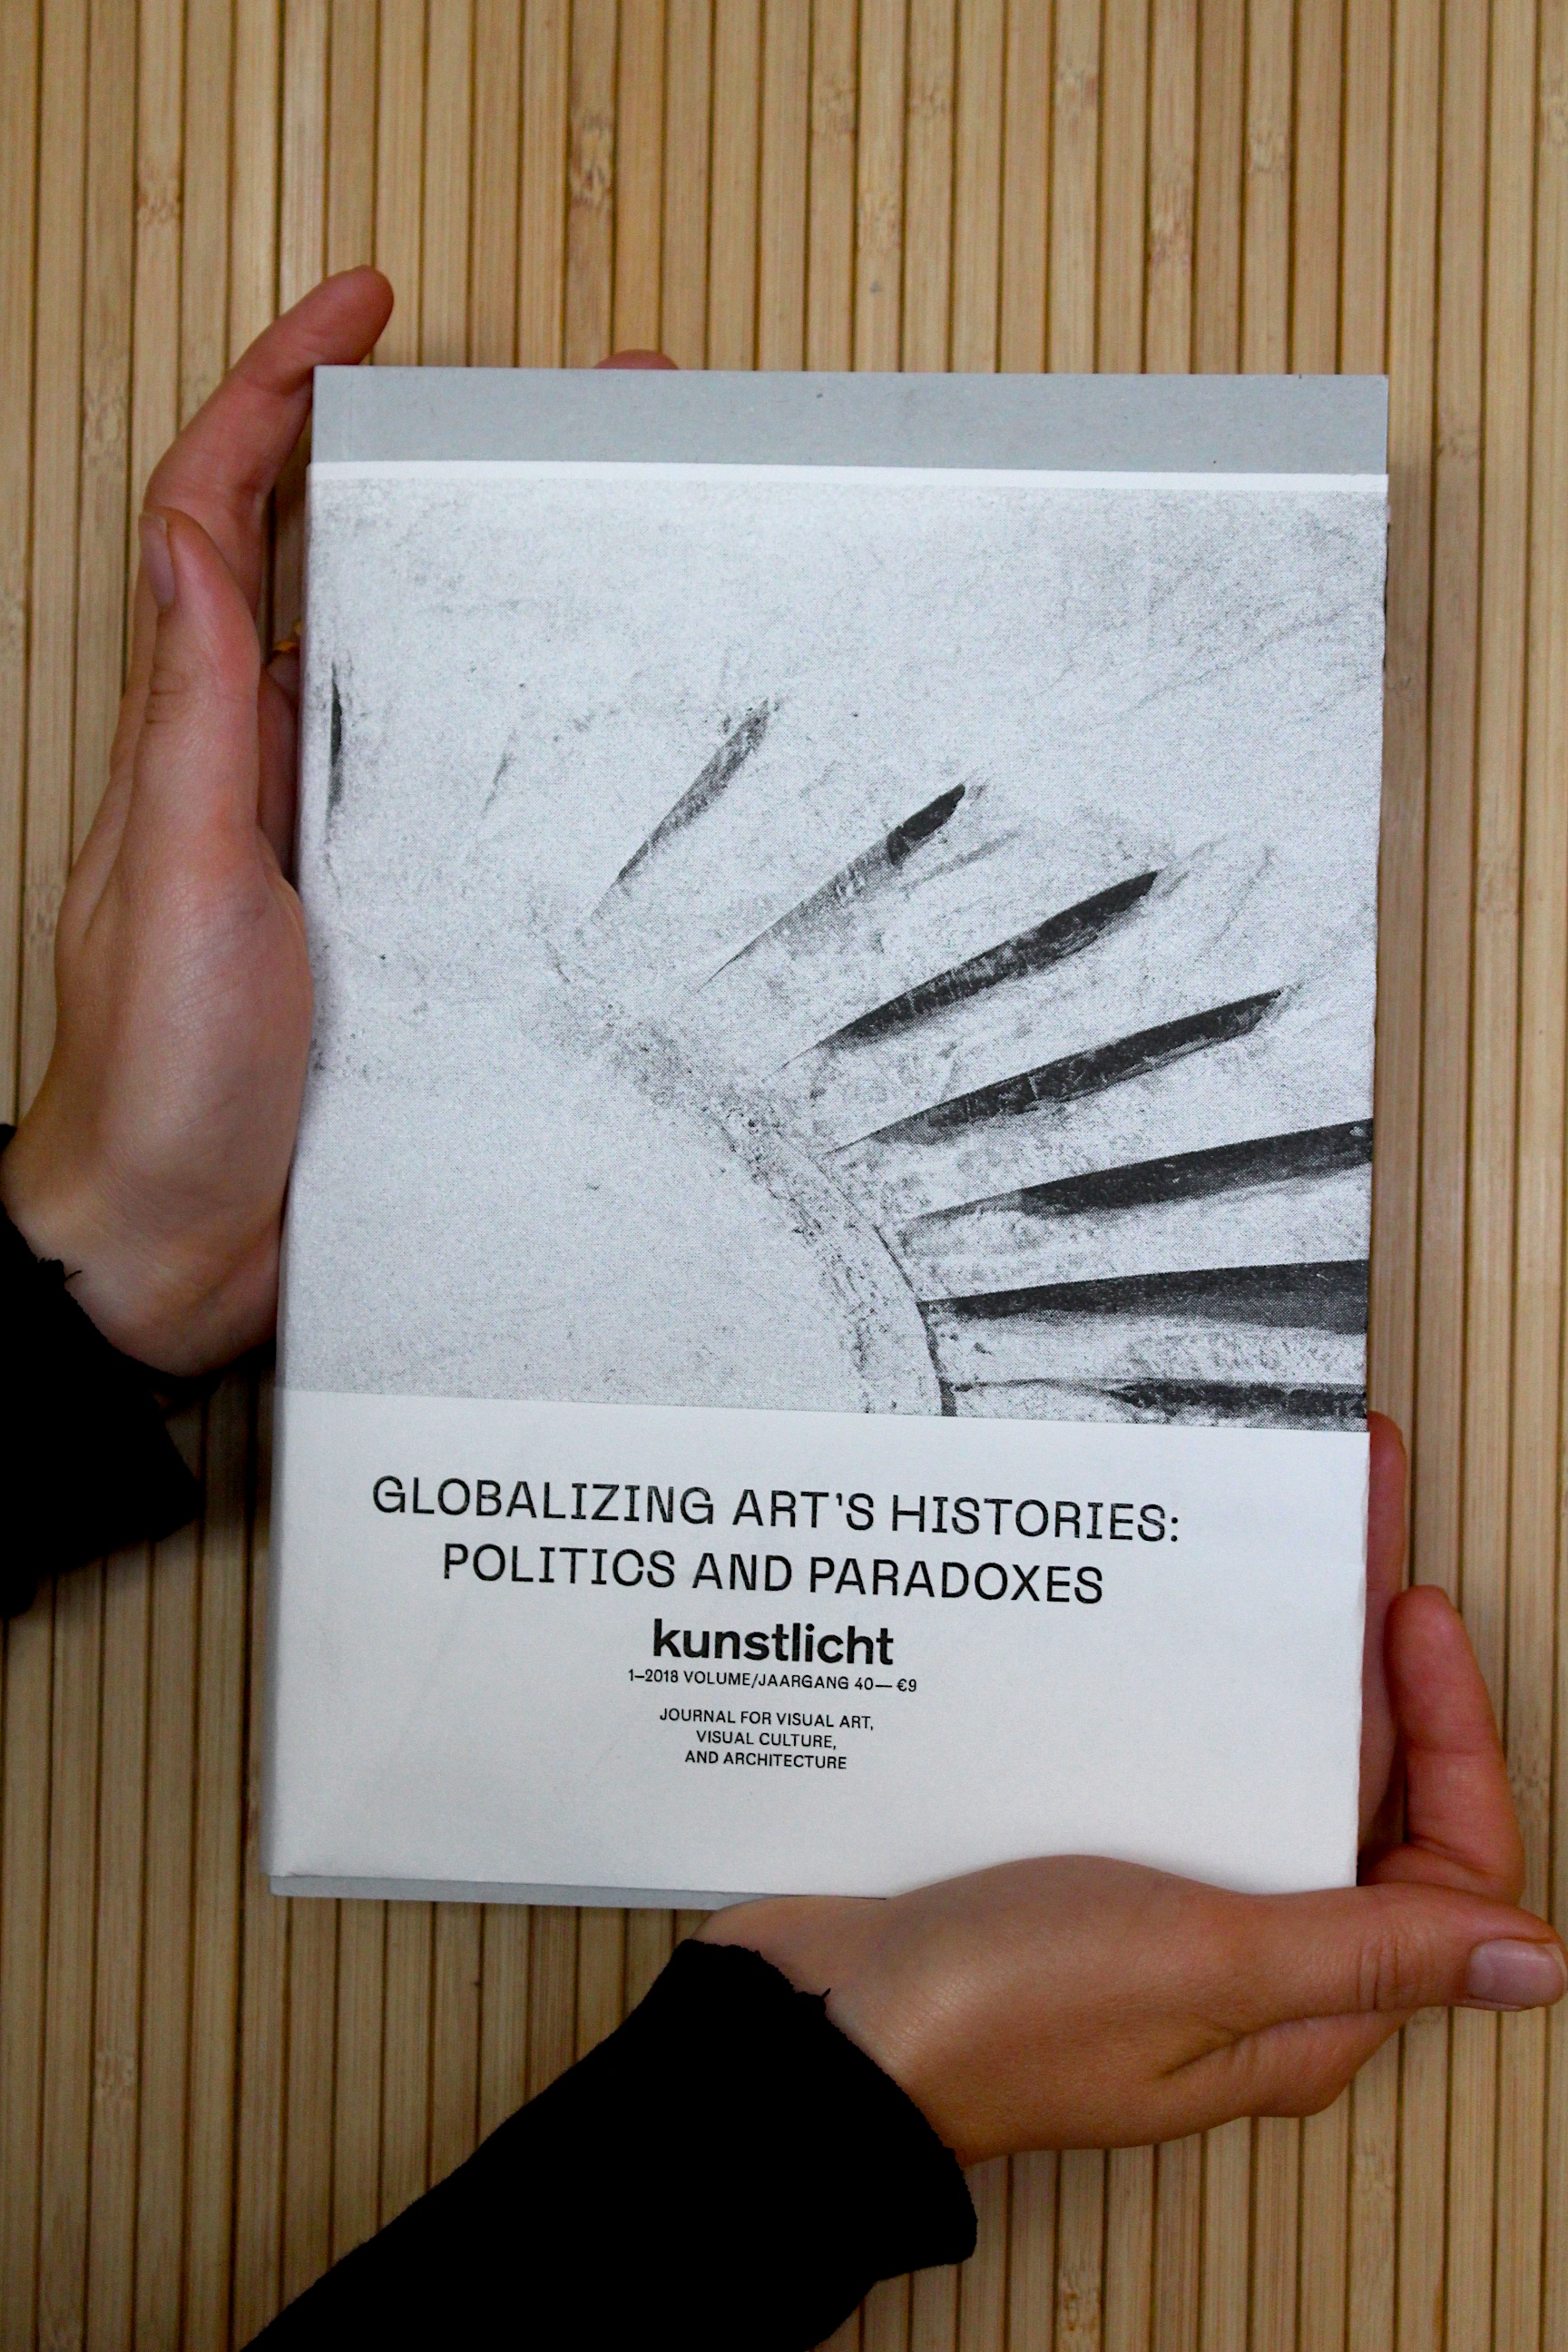 VOL. 39, 2018, NO. 1, GLOBALIZING ART'S HISTORIES: POLITICS AND PARADOXES